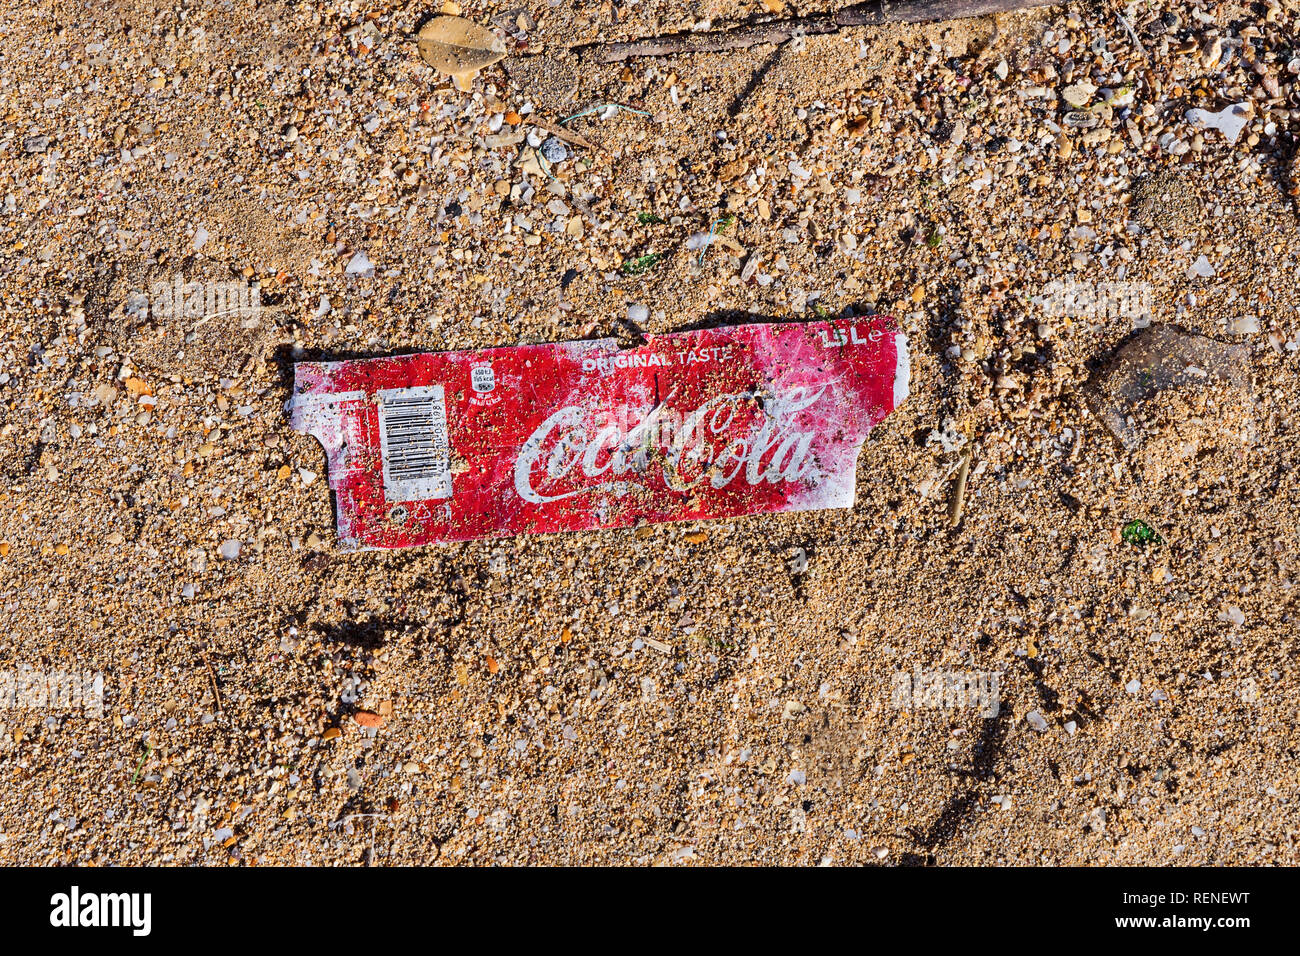 Birkirkara, Malta - December 31, 2018: Plastic label from bottle of Coca-Cola on sandy beach after storm. Plastic pollution problem environment pollut Stock Photo